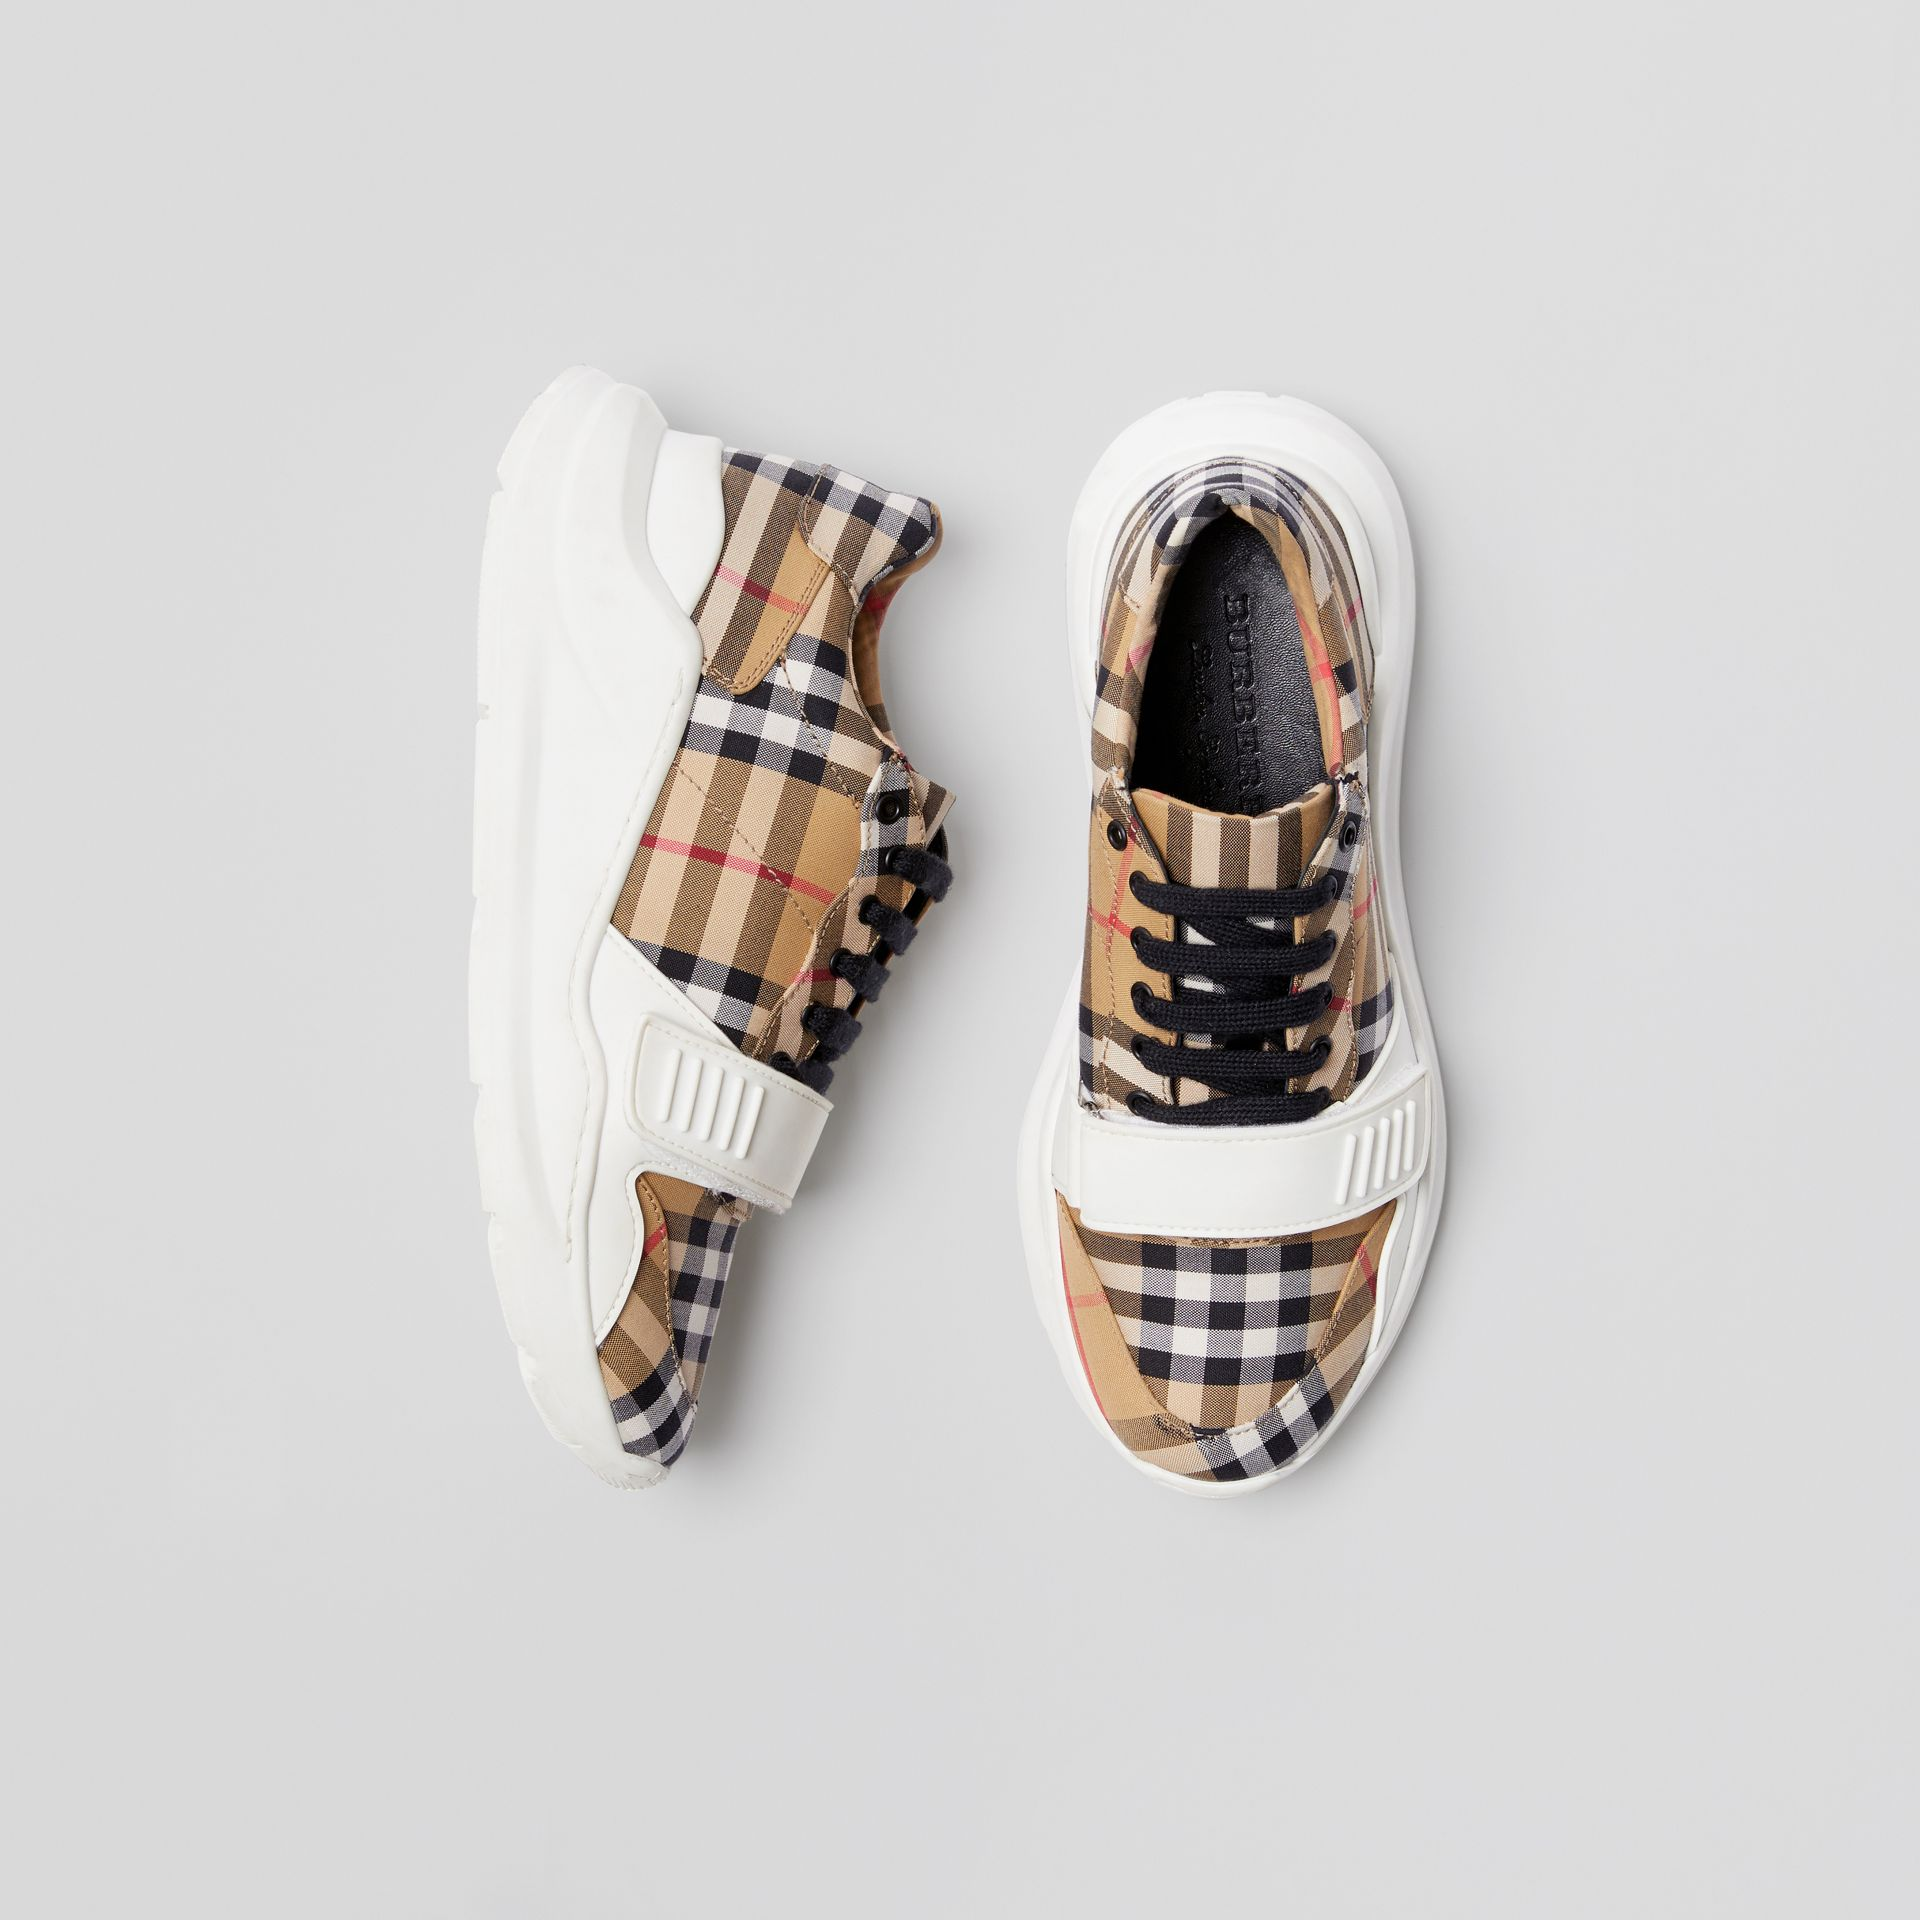 Sneakers en coton Vintage check (Jaune Antique) - Femme | Burberry Canada - photo de la galerie 0